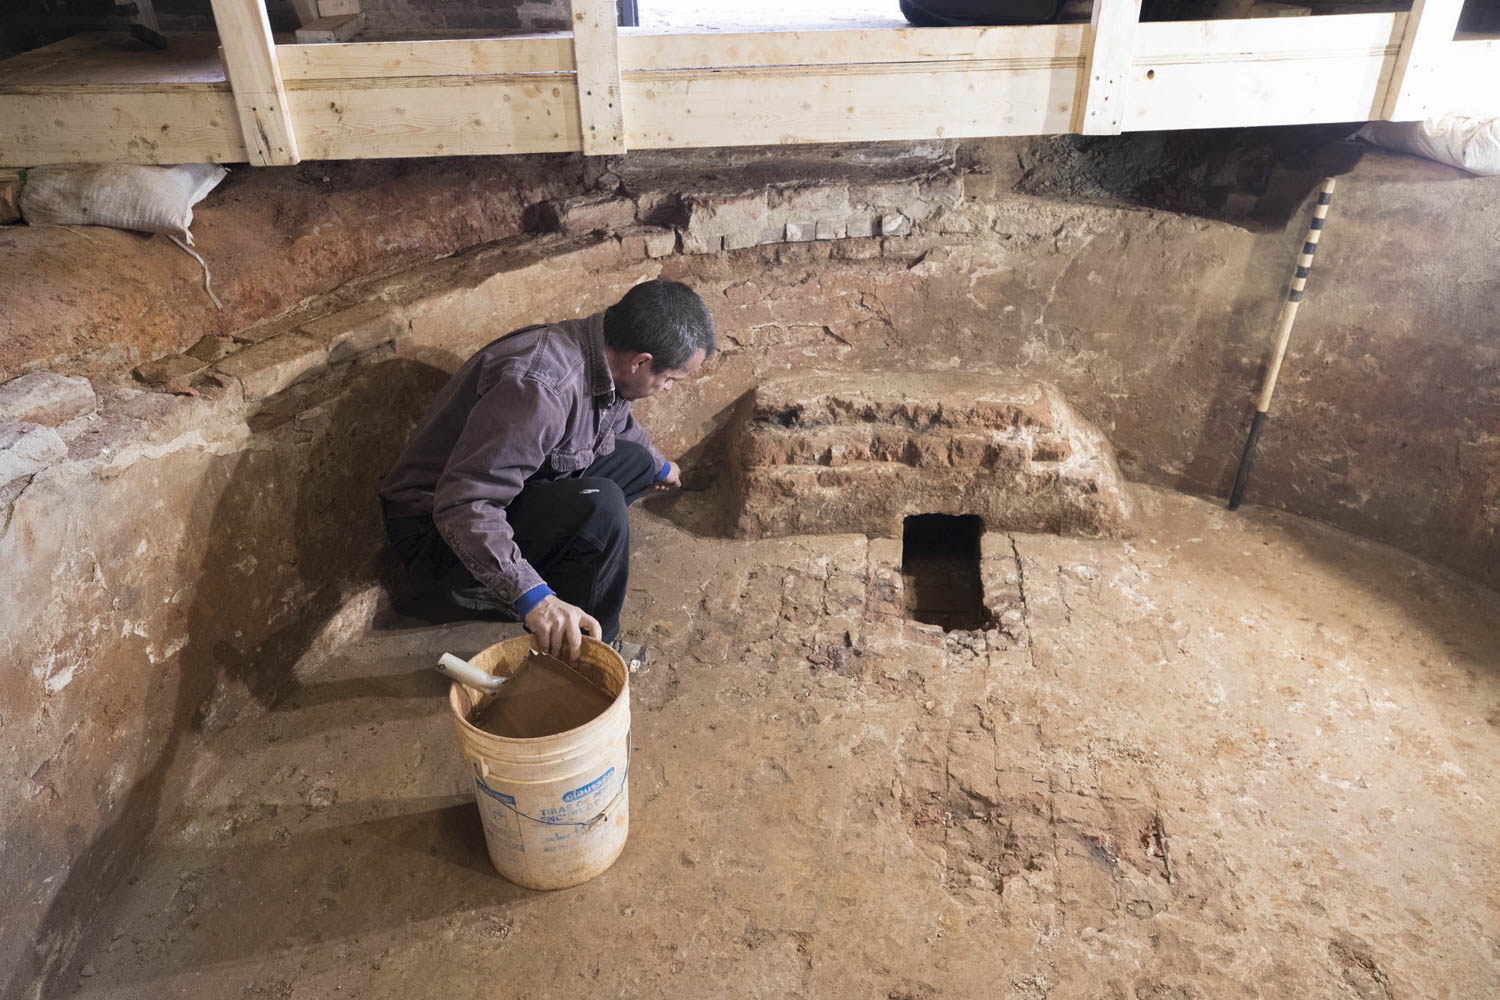 Archaeologist Ben Ford, of Rivanna Archaeological Services, works on the cistern found underneath Lawn room 24.